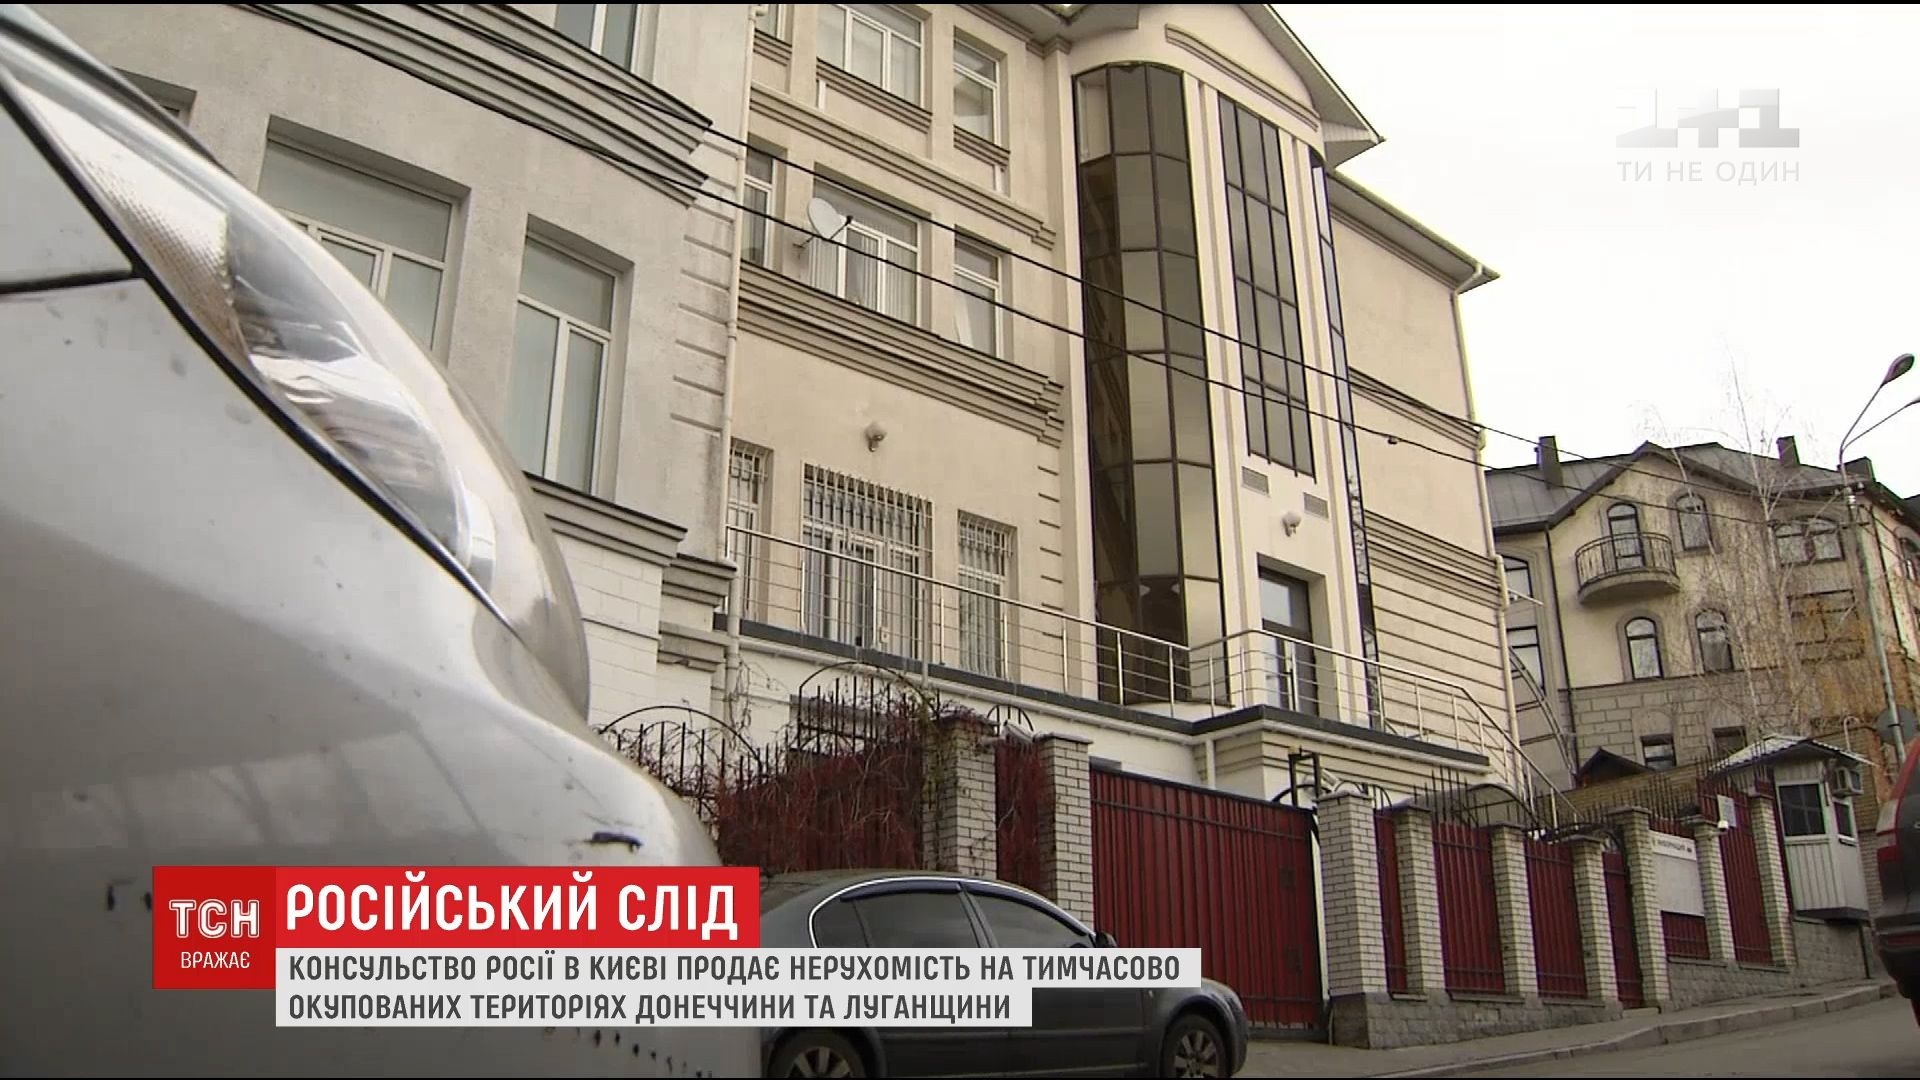 Russian consulate in Kyiv / Screenshot